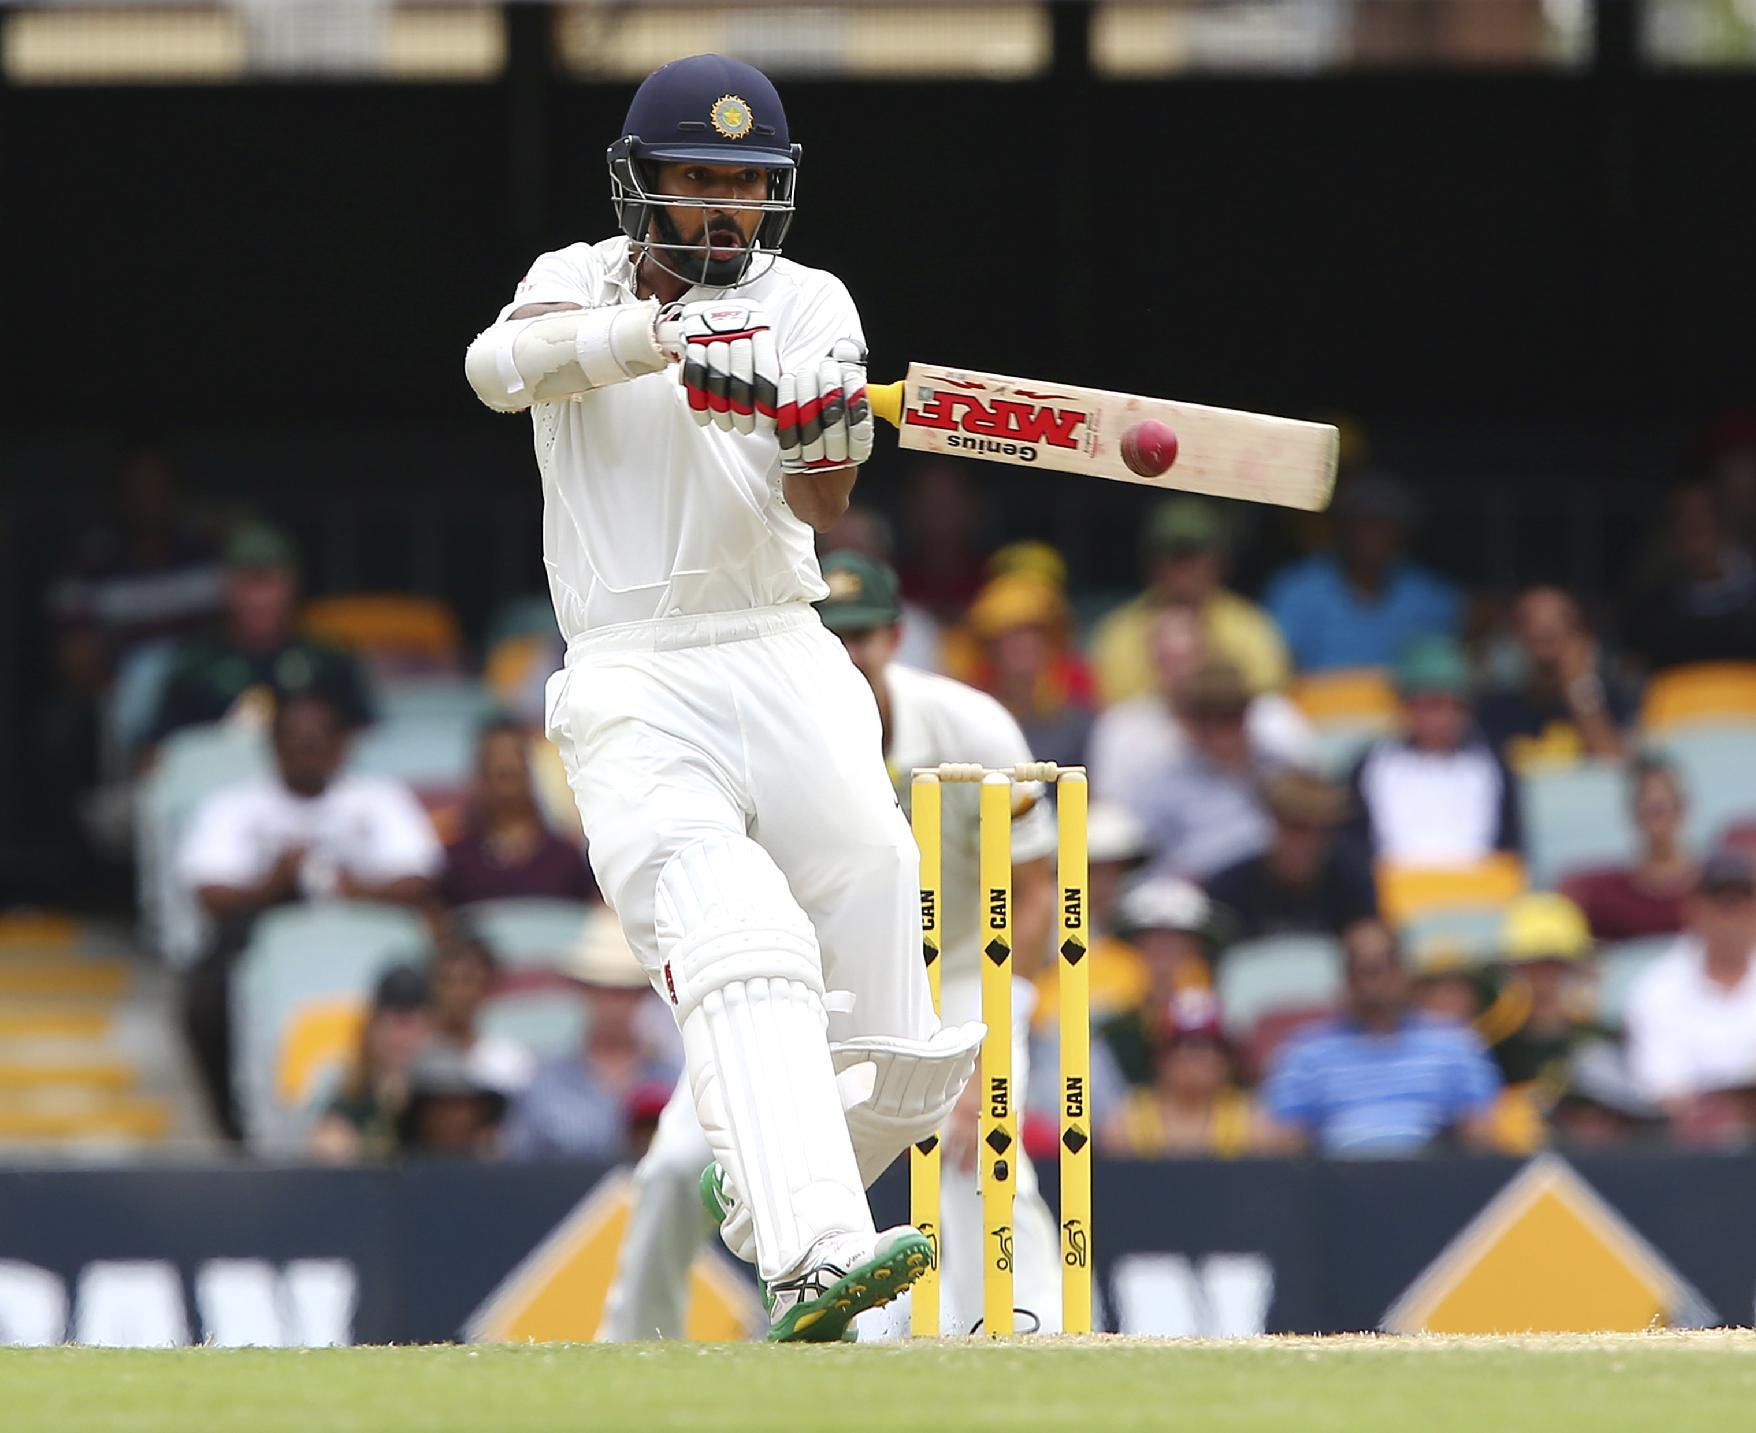 Dhawan's practice injury hurts India's prospects